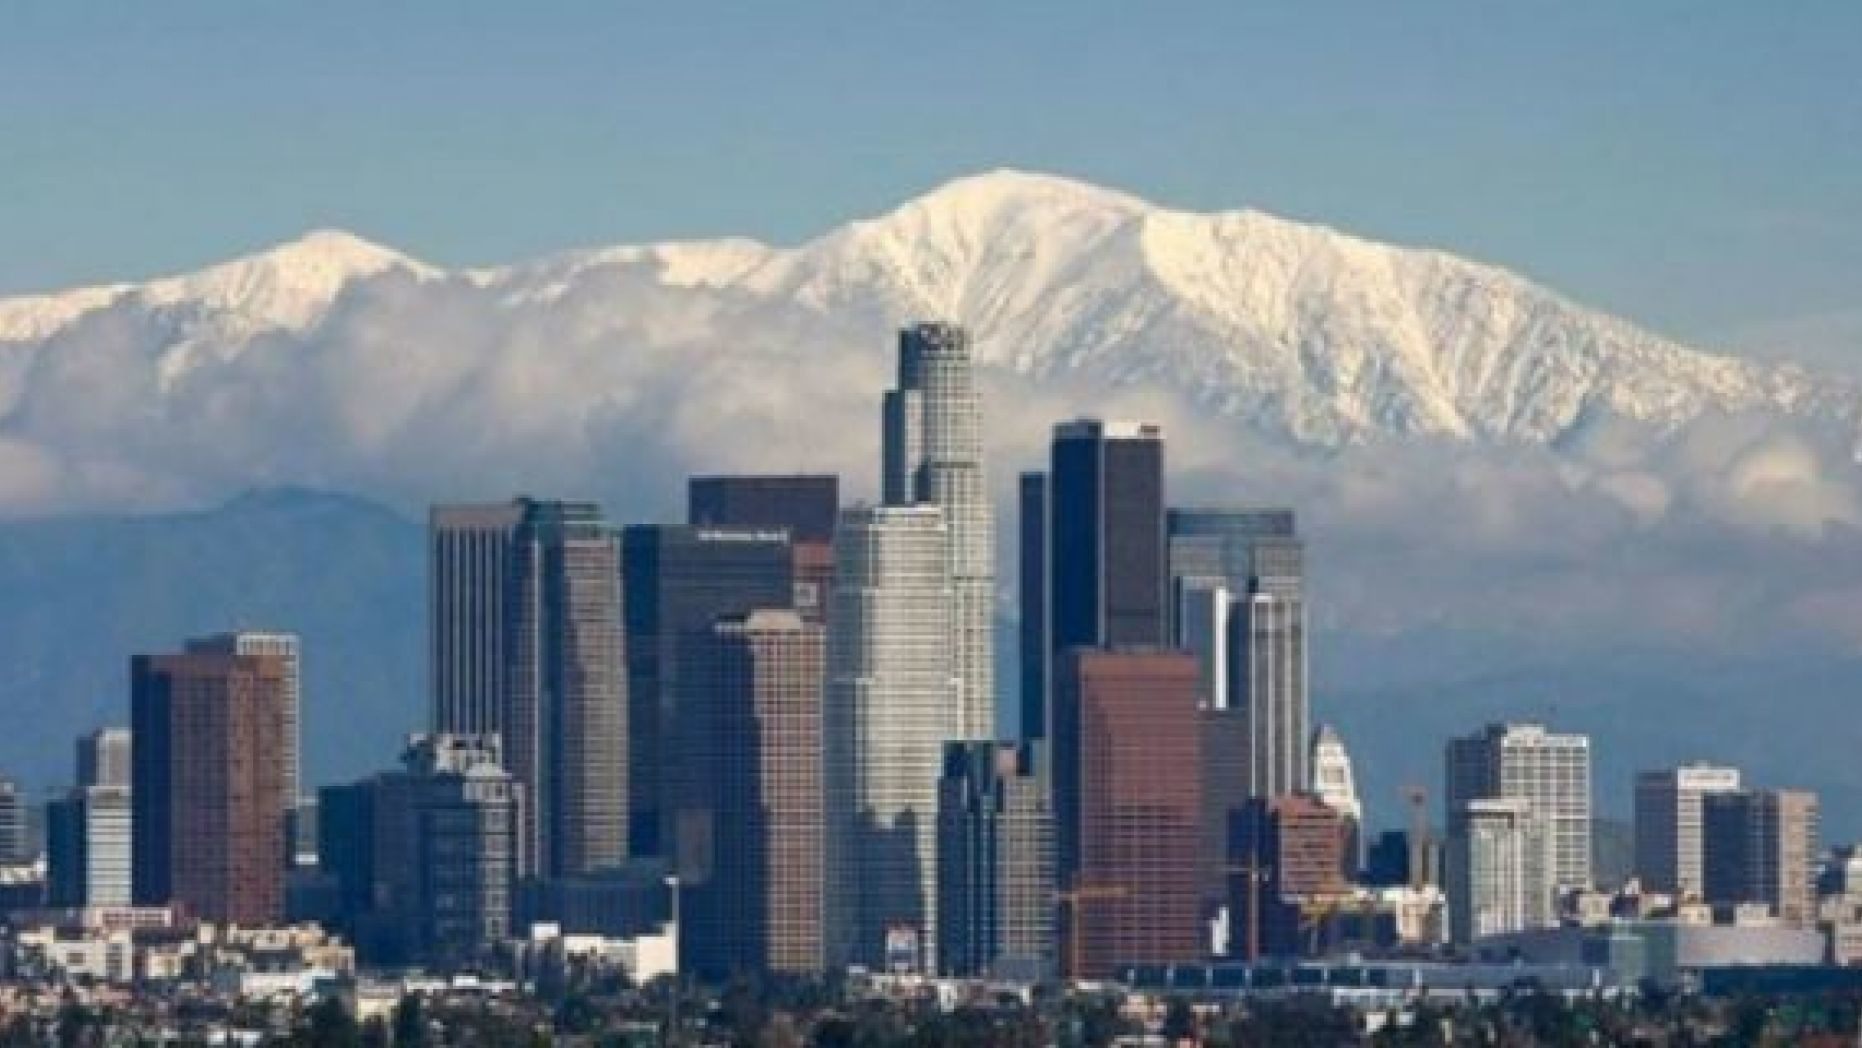 Los Angeles is strictly a refuge city. (Fox News)